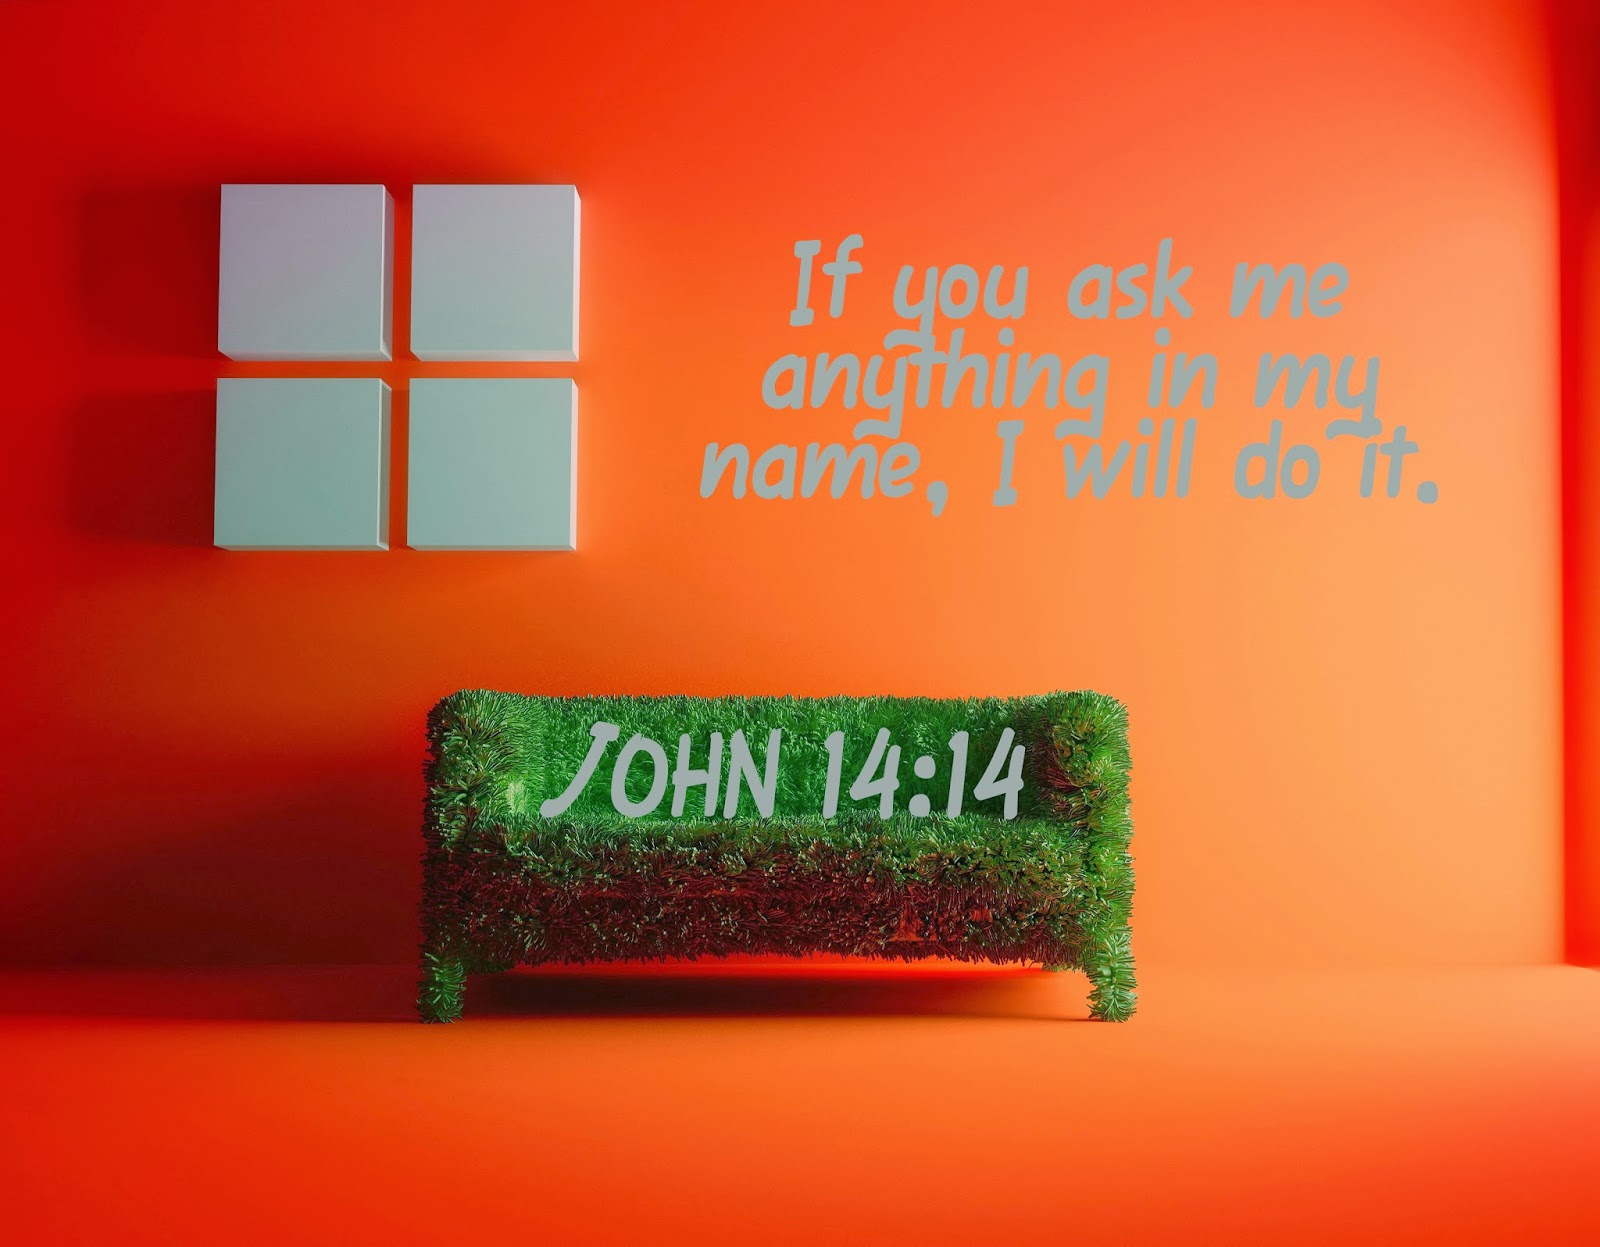 Hearts With Quotes Wallpapers Scripture Wallpaper John 14 14 Bible Verse Wallpaper